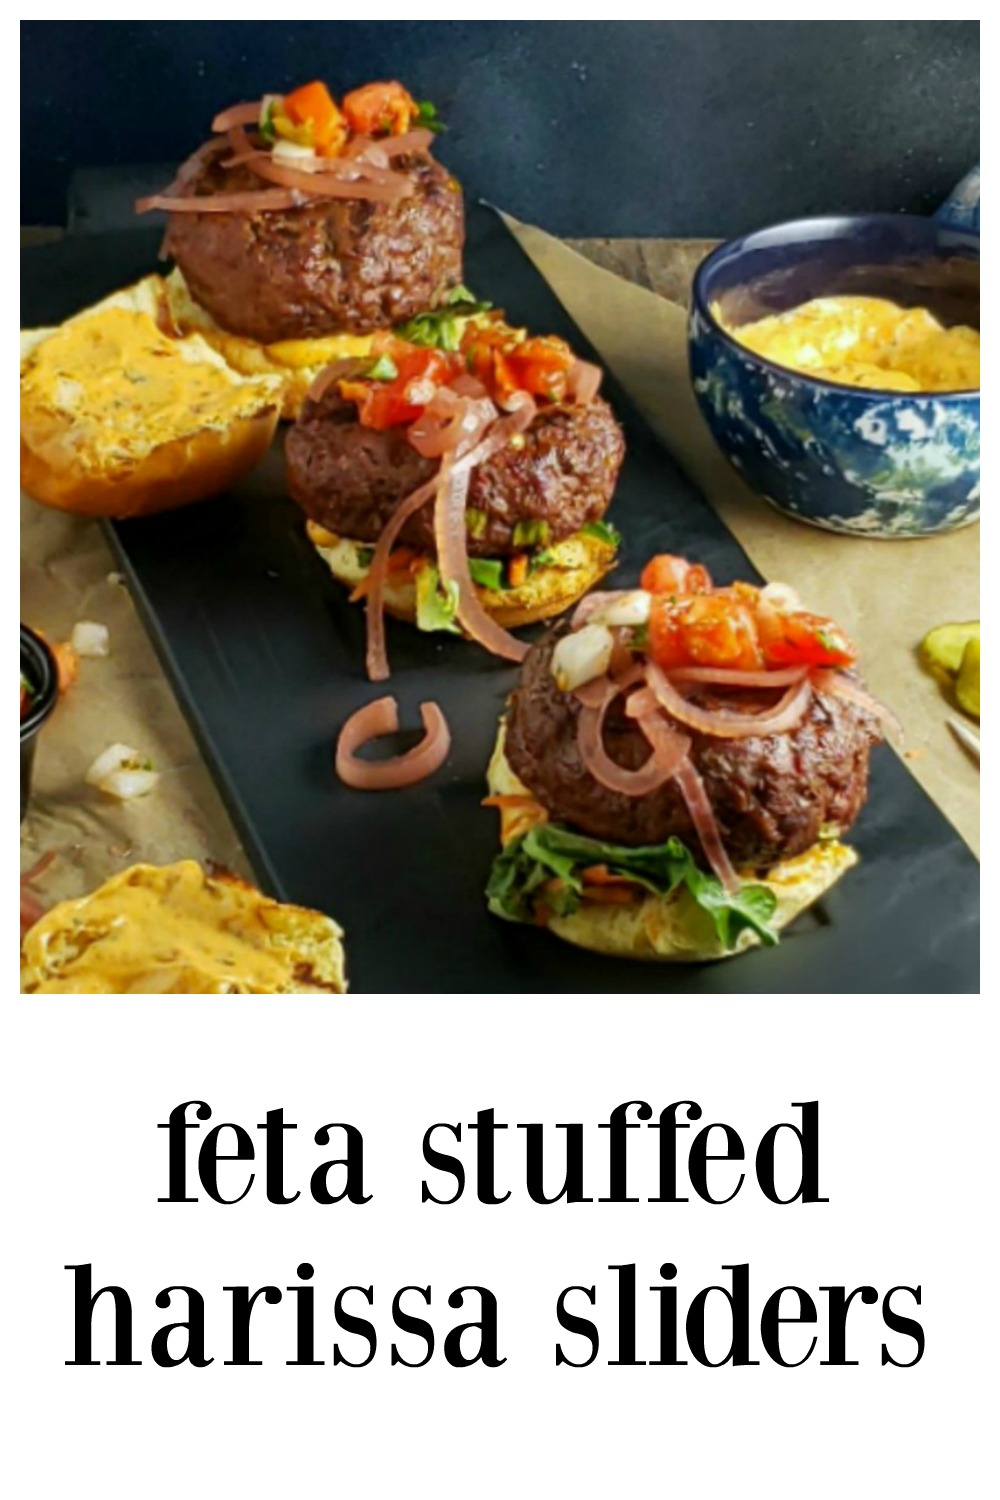 You're gonna feel like you're in a trendy Brew Pub or Bistro when you serve Feta Stuffed Harissa Sliders! They're fab! Step by Step directions. #FetaStuffedHarissaSliders #GrilledSliders #FetaStuffedHarissaBurgers